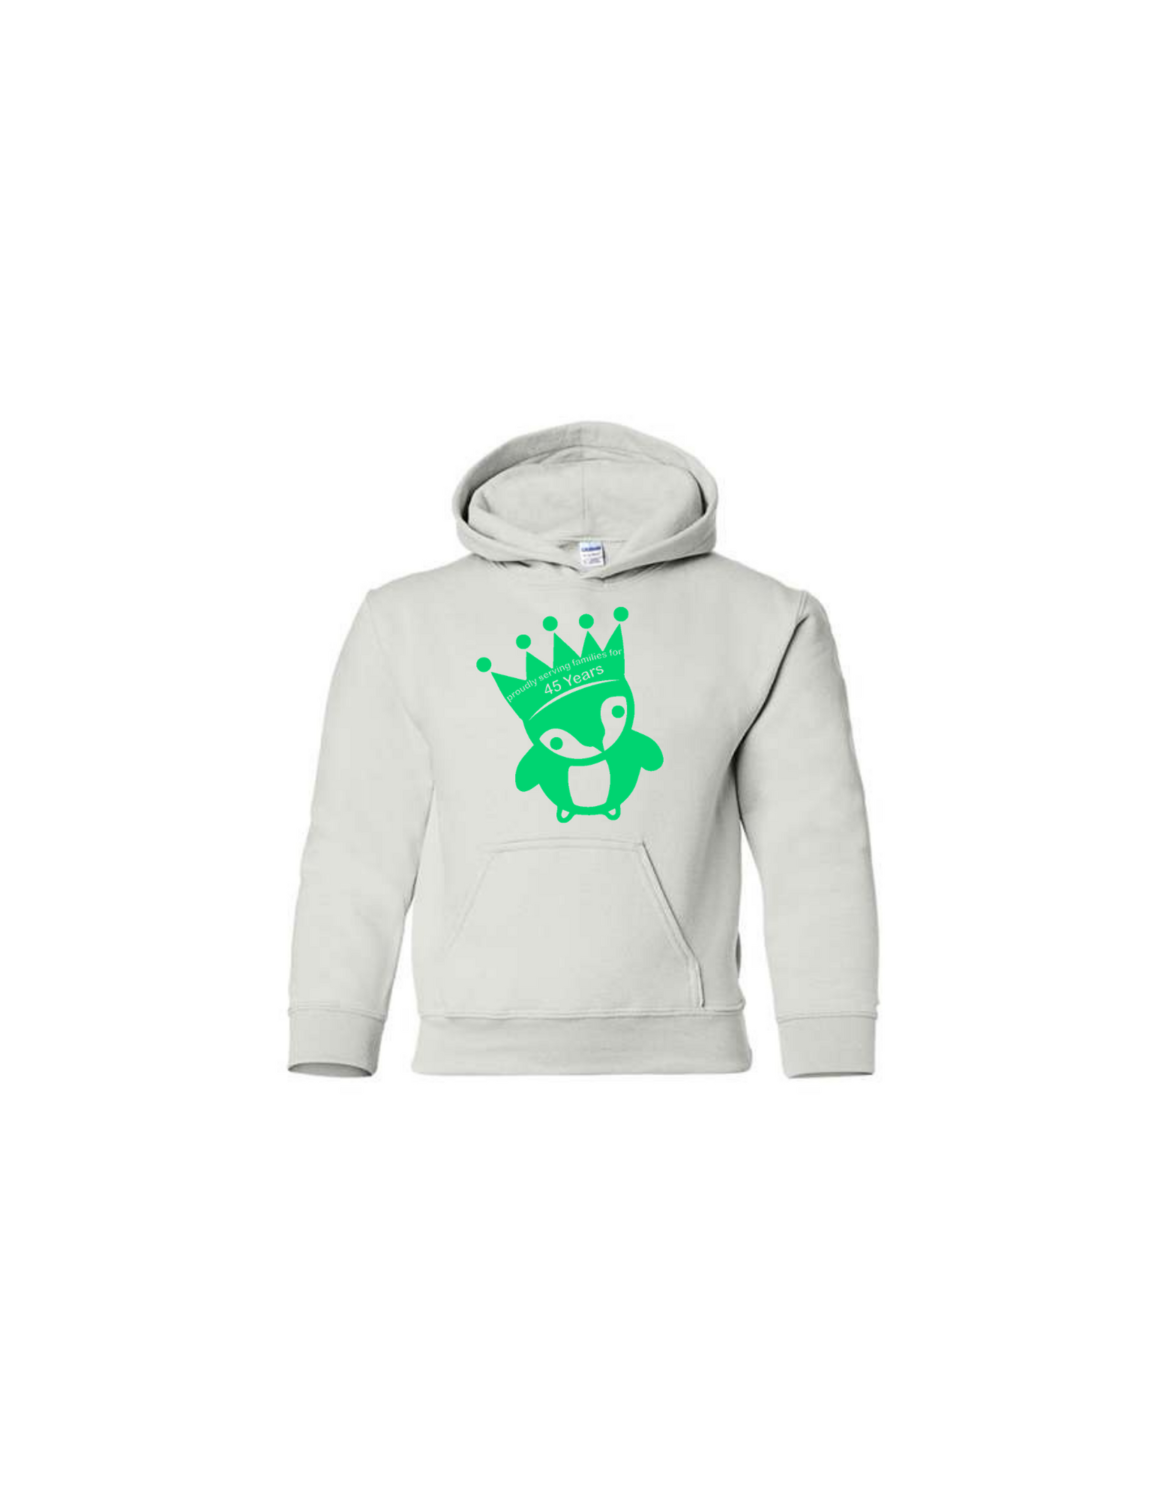 45th Youth Hoodie